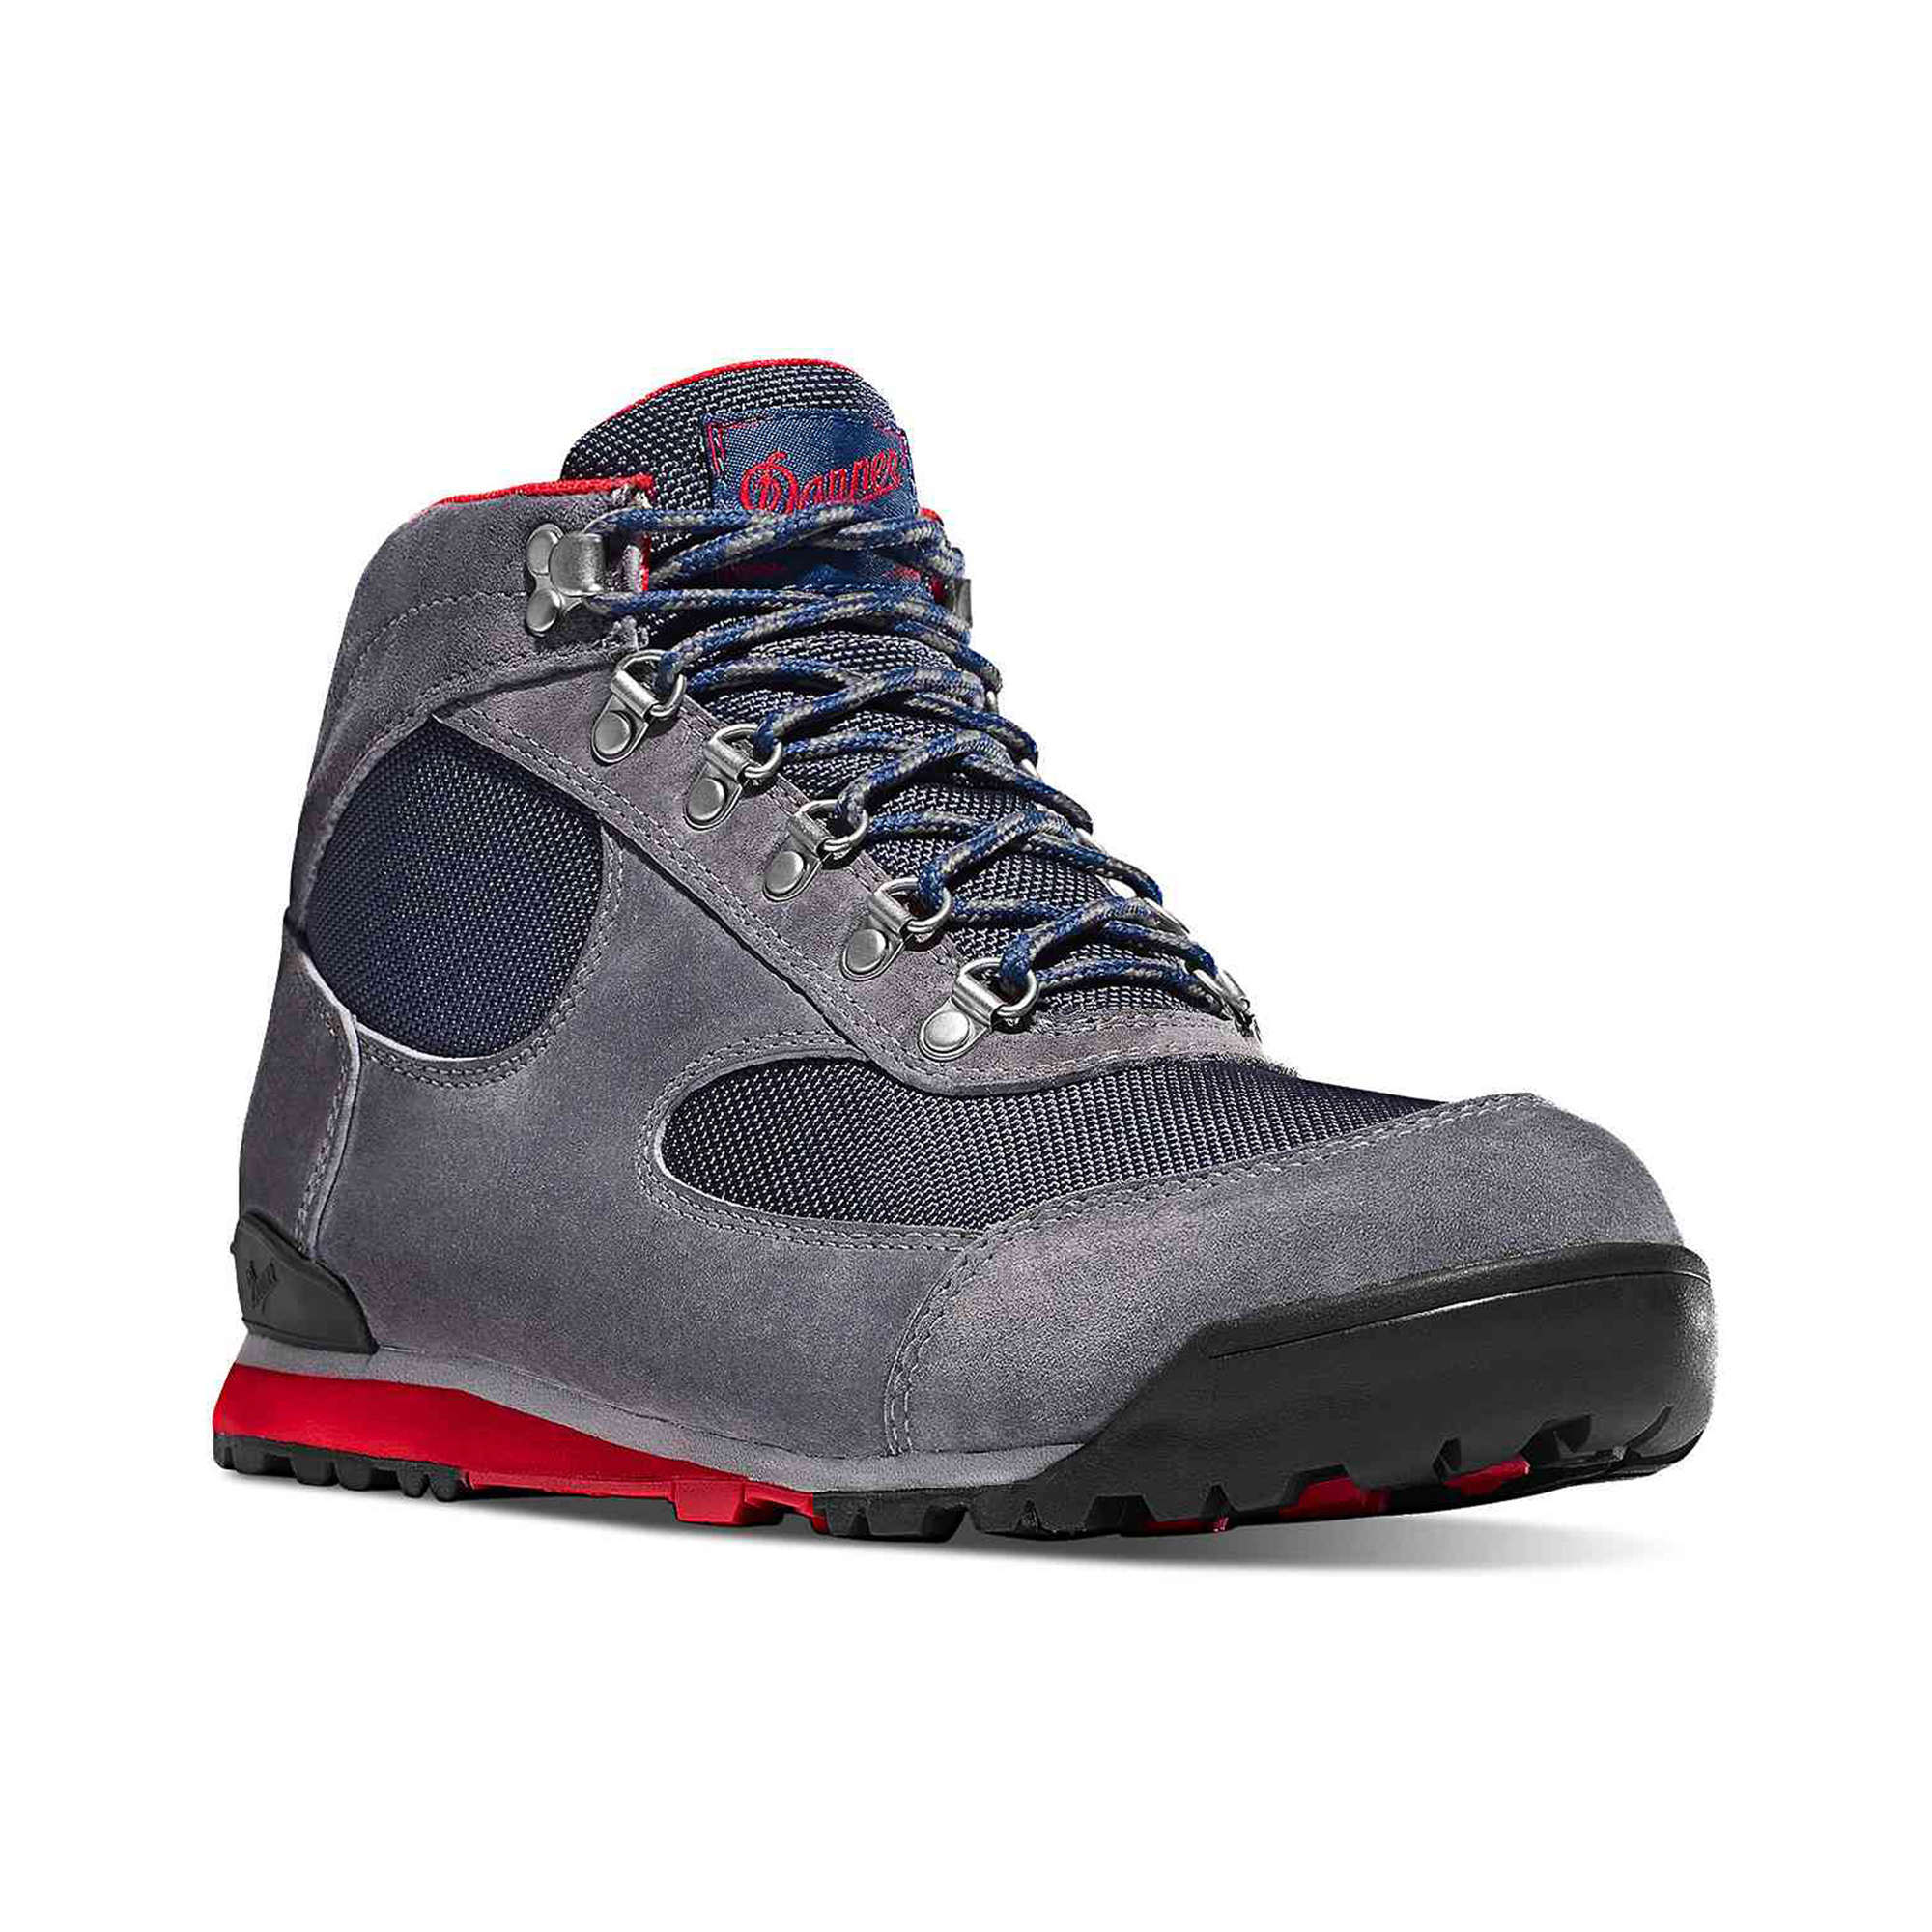 Danner Jag Hiking Boots, Steel Gray/Blue Wing | Bespoke Post